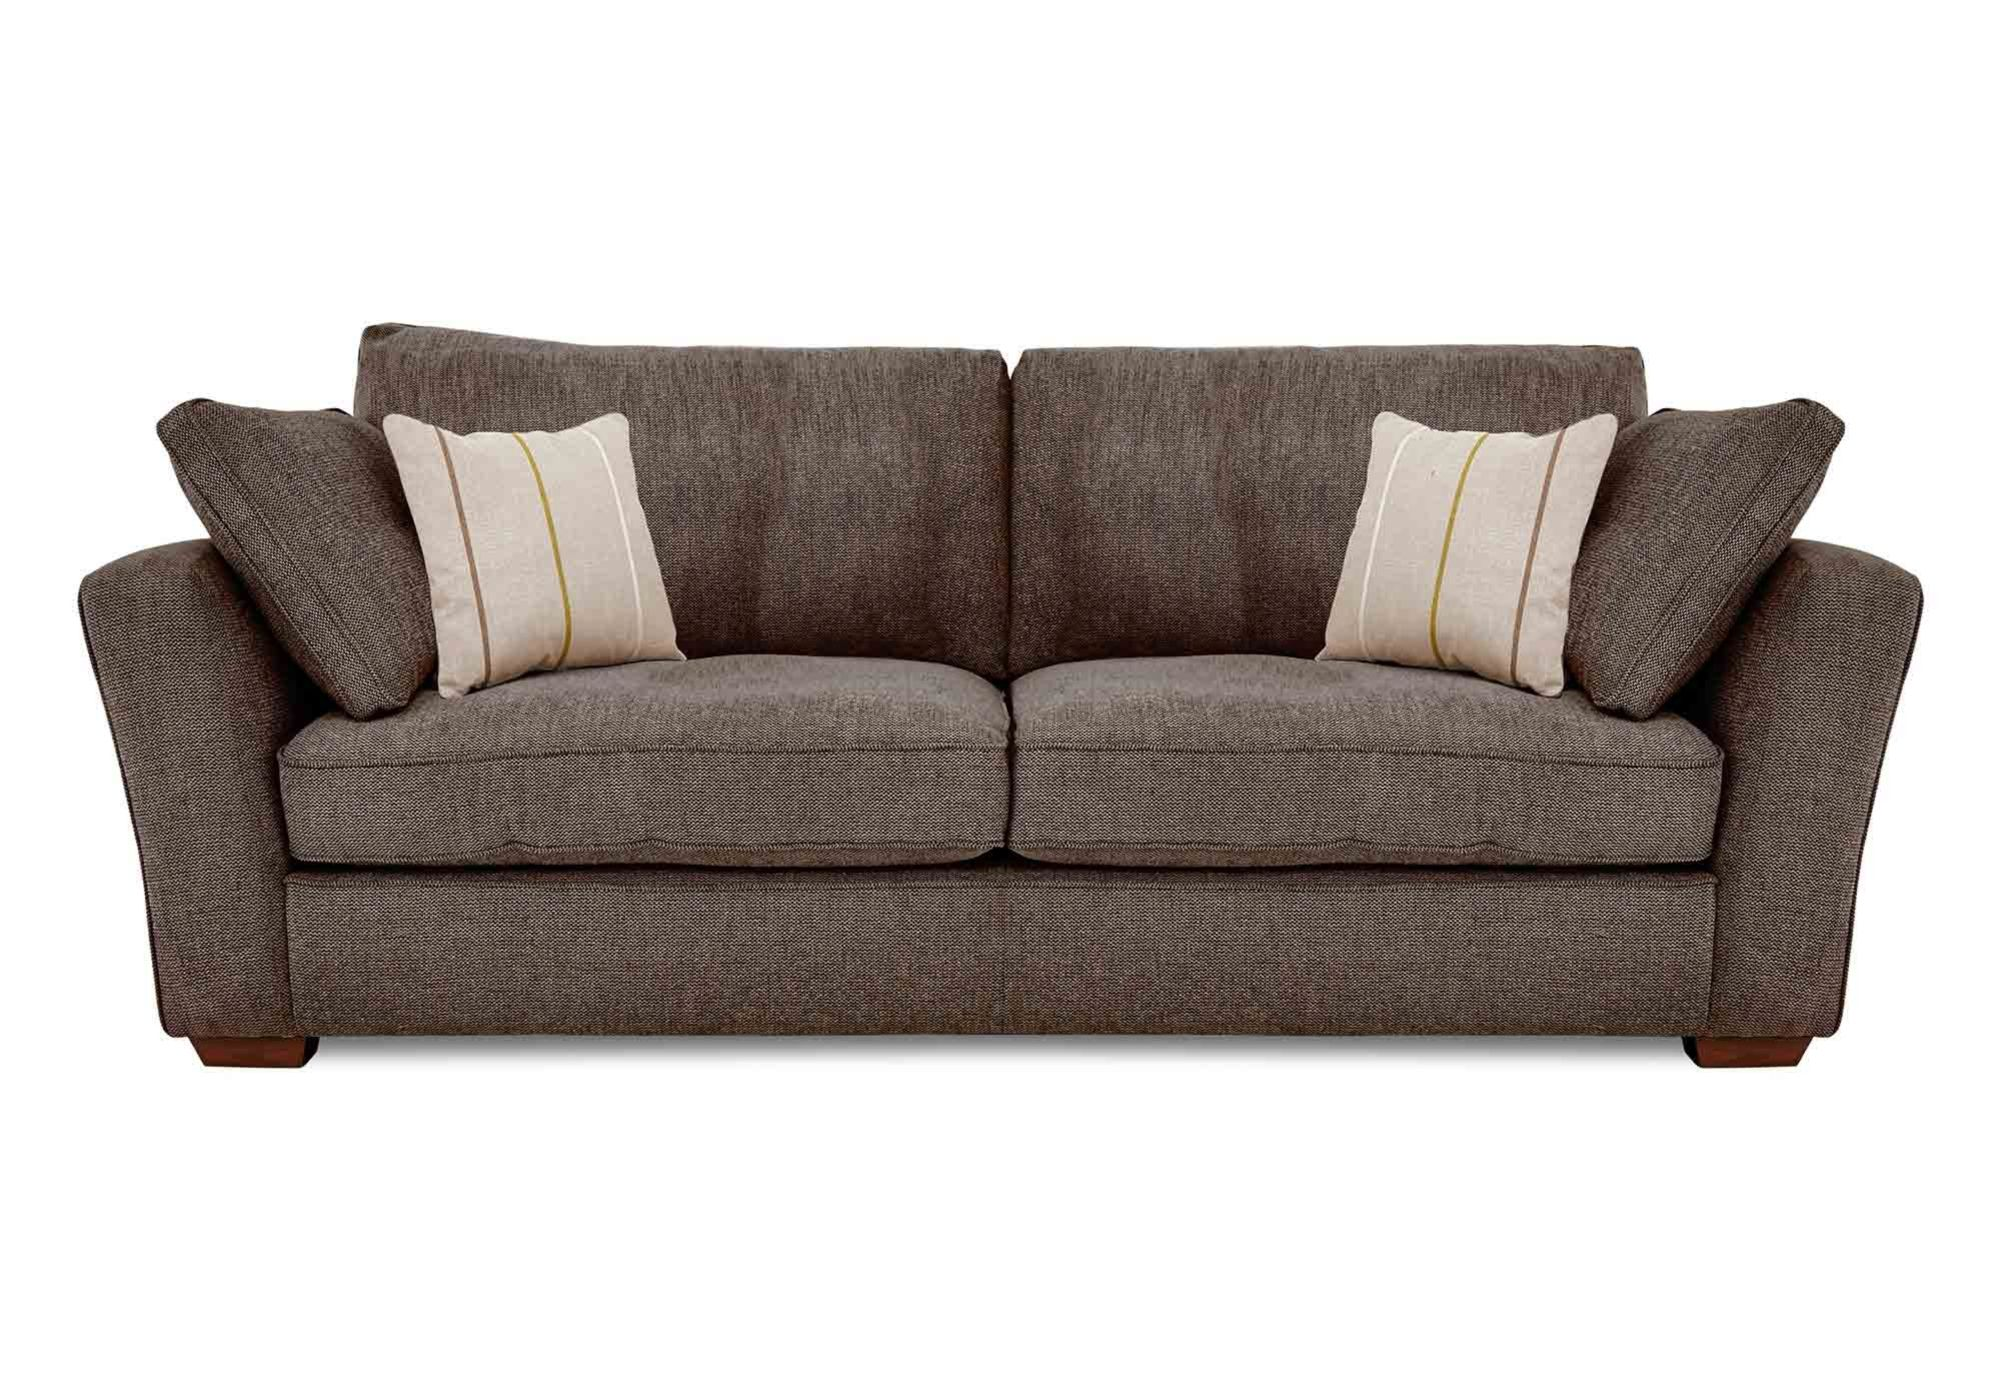 Furniture Village Sofas 4 seater sofa - otto - gorgeous living room furniture from